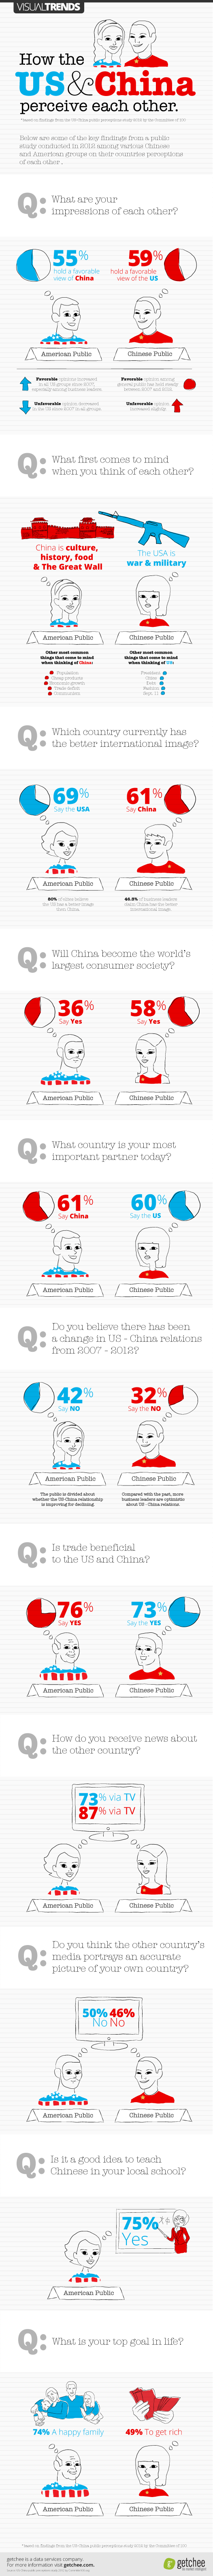 how-the-us-and-chinese-perceive-each-other_5090d47b10ce5